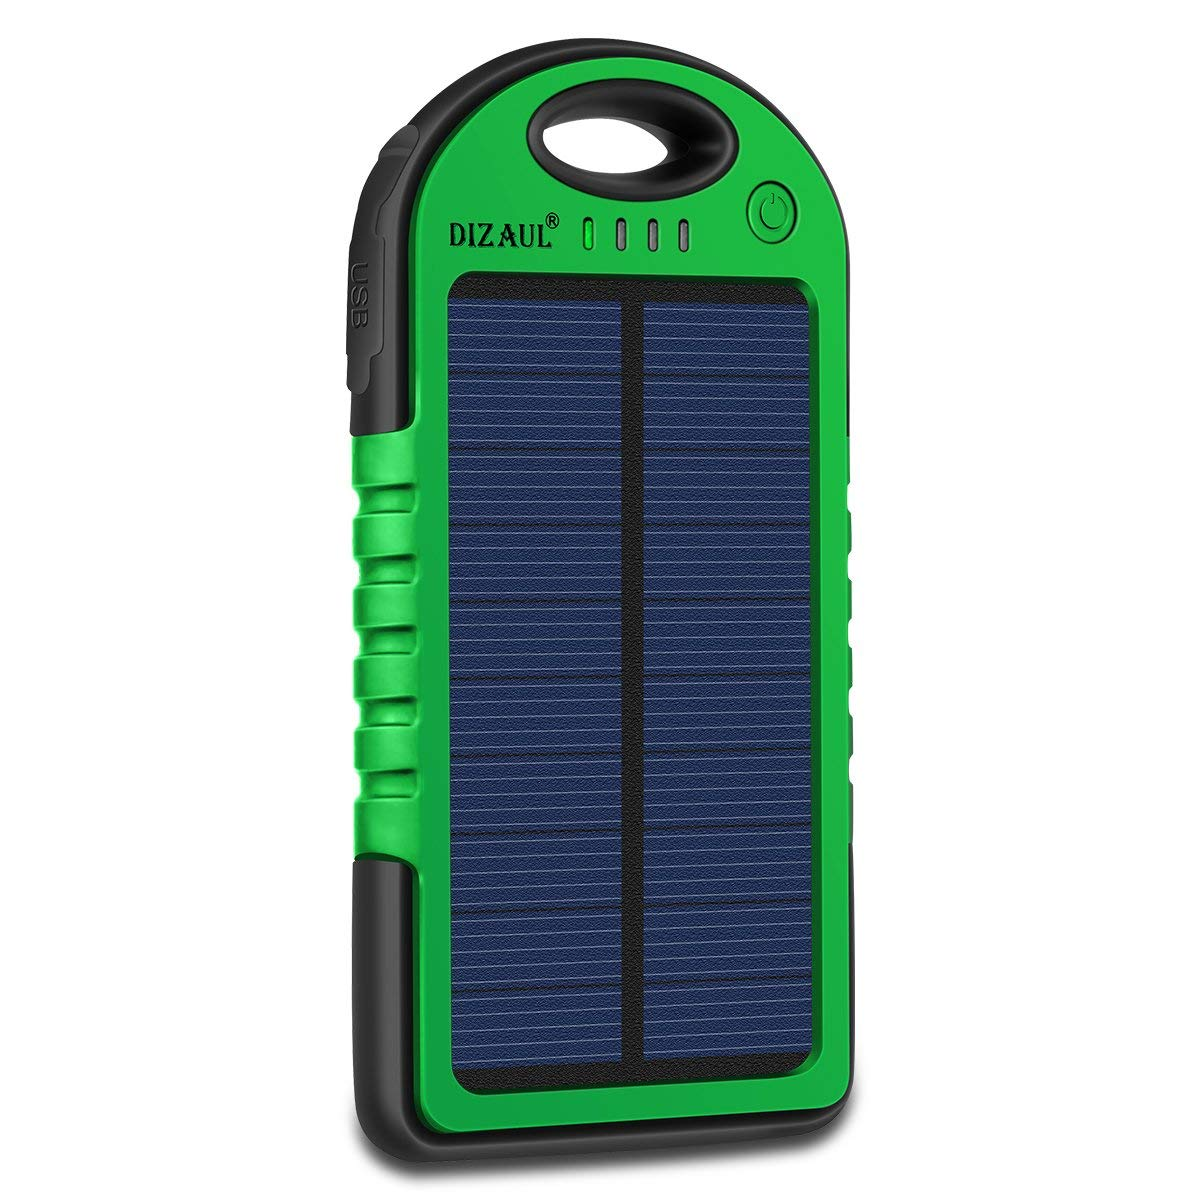 Solar Charger, Dizaul 5000mAh Portable Solar Power Bank Waterproof/Shockproof/Dustproof Dual USB Battery Bank for Cell Phone, Samsung, Android Phones, Windows Phones, GoPro Camera, GPS and More (Green)